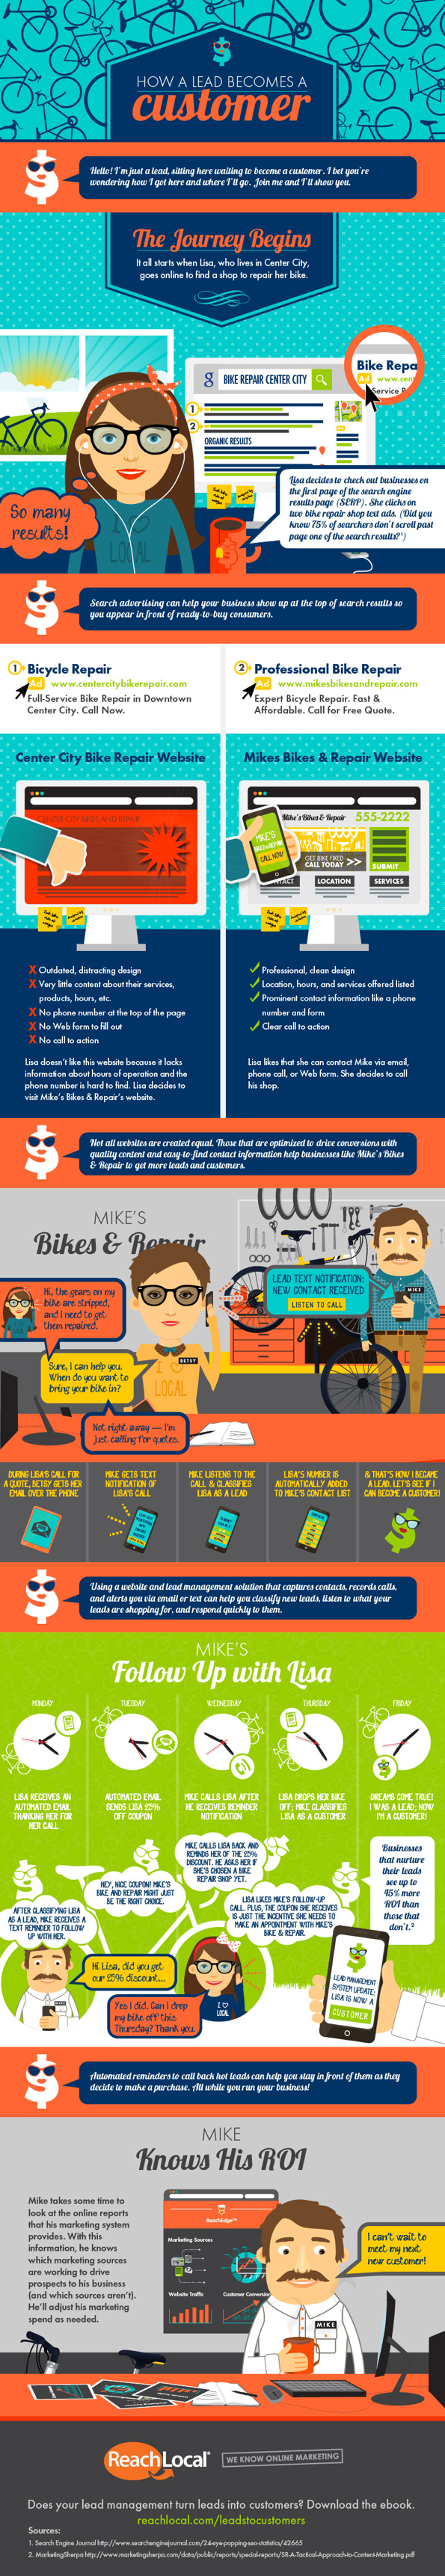 how-a-lead-becomes-a-customer-infographic